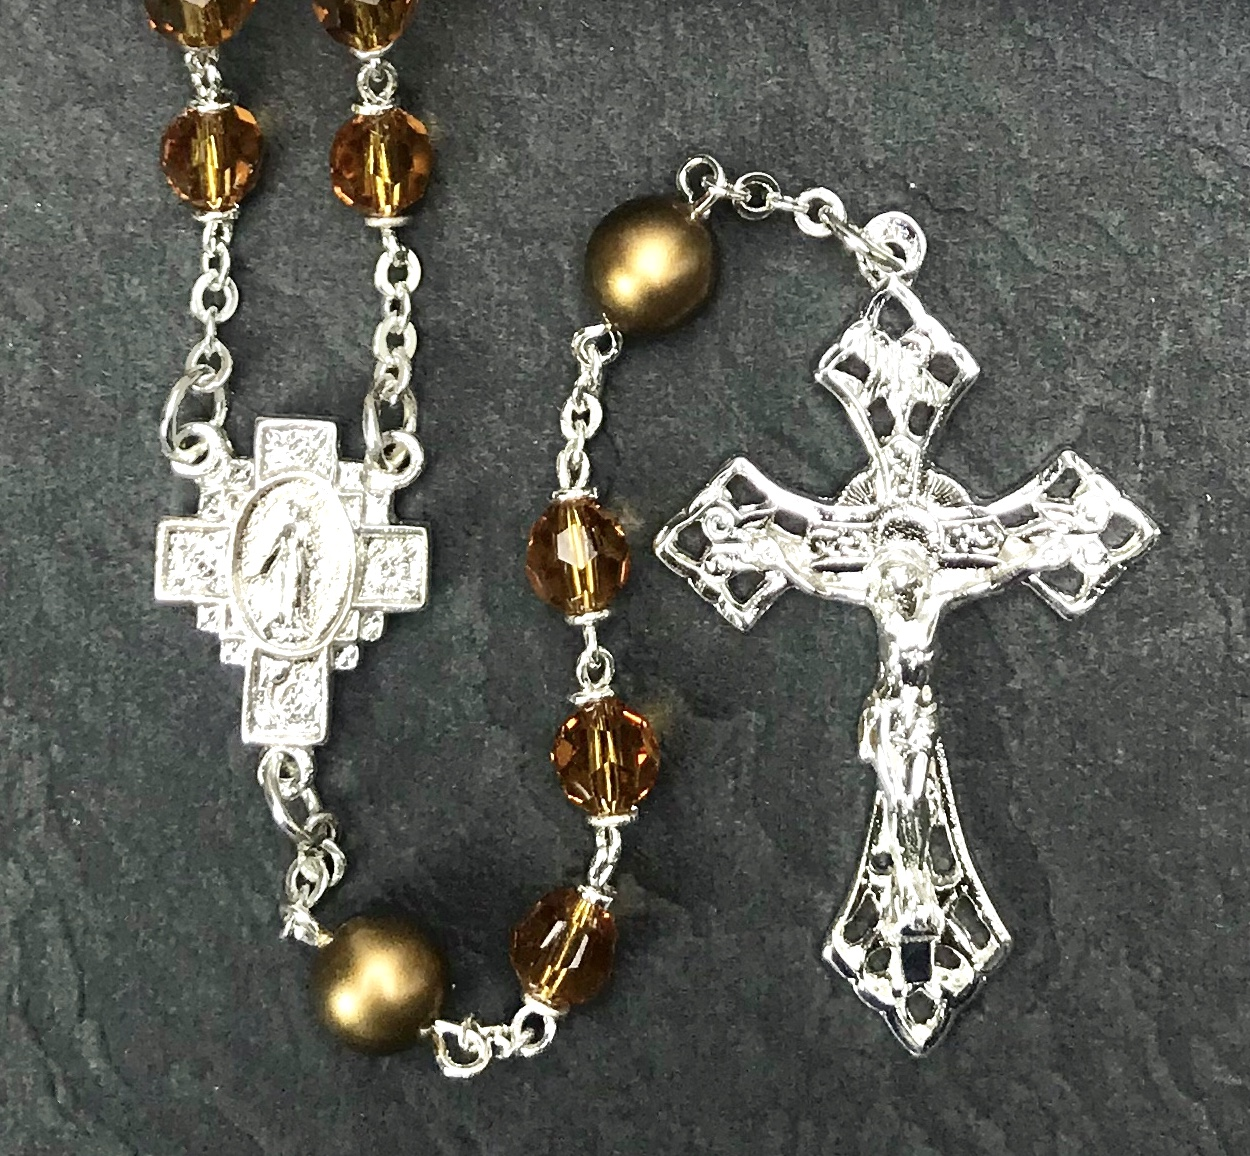 6mm TOPAZ TIN CUT WITH PEARL OUR FATHER BEADS WITH STERLING SILVER PLATE ROSARY BOXED